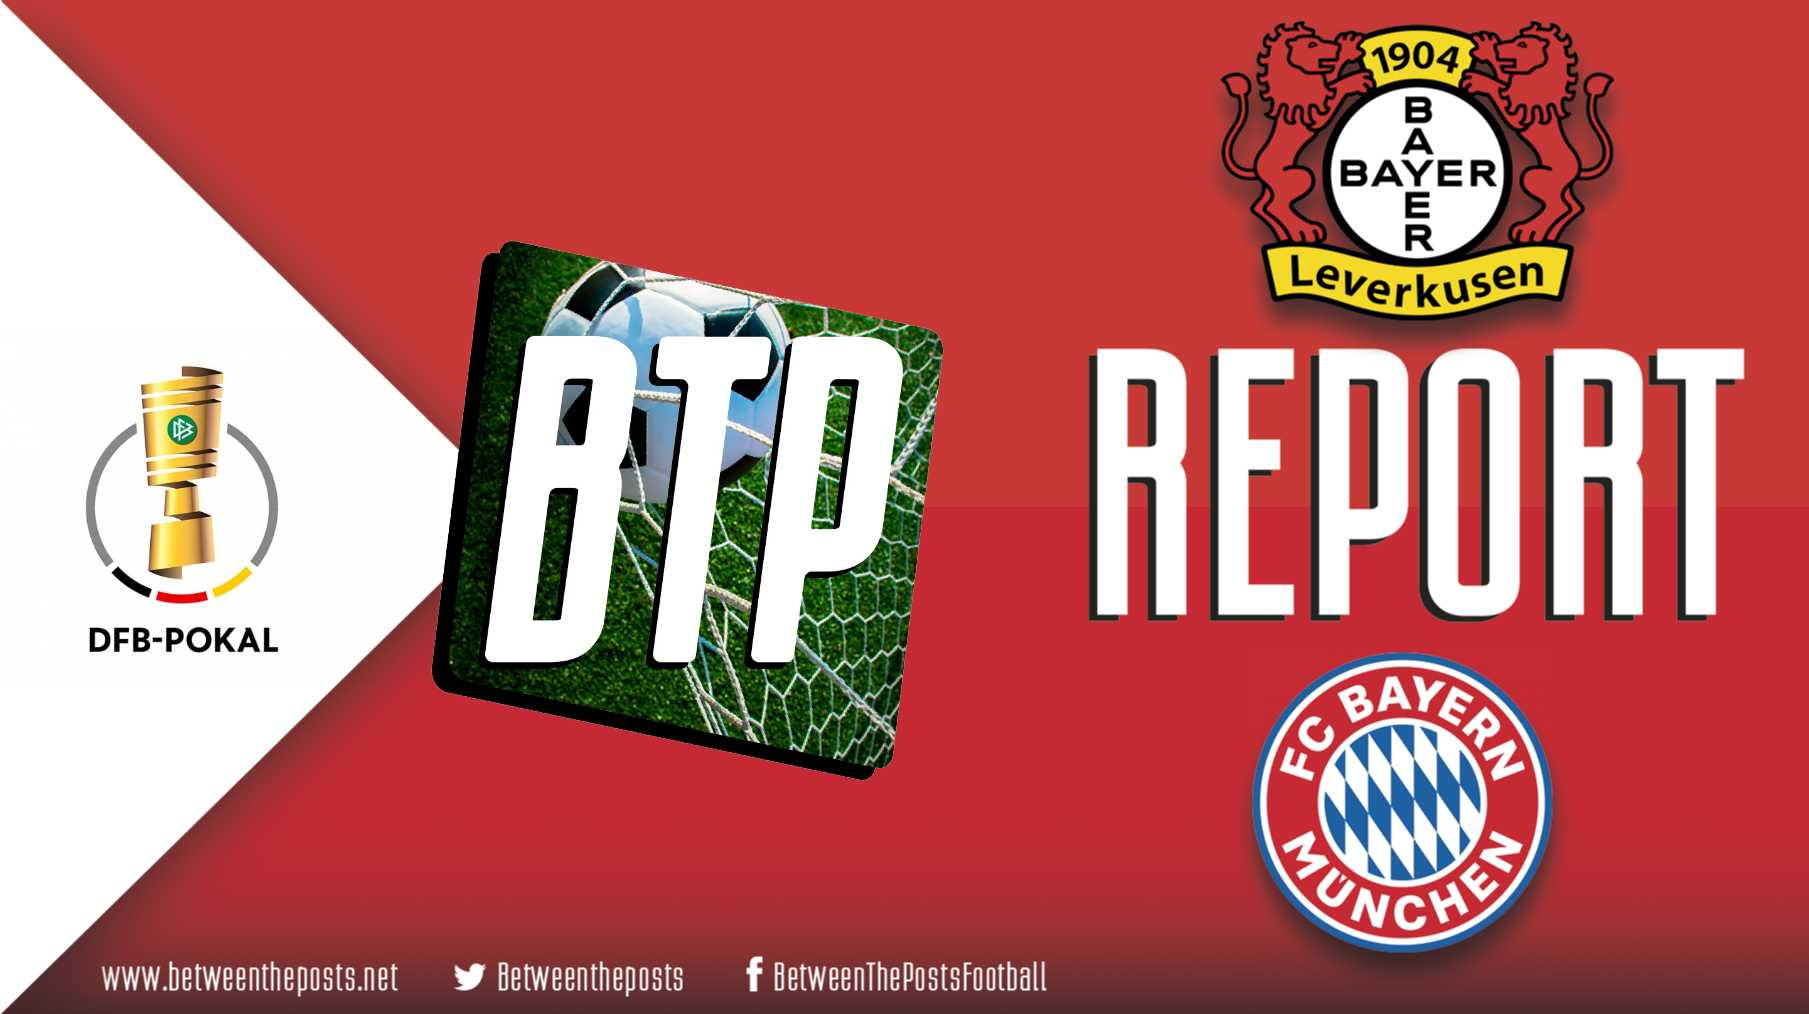 Tactical analysis Bayer Leverkusen Bayern Munich 2-4 DFB-pokal